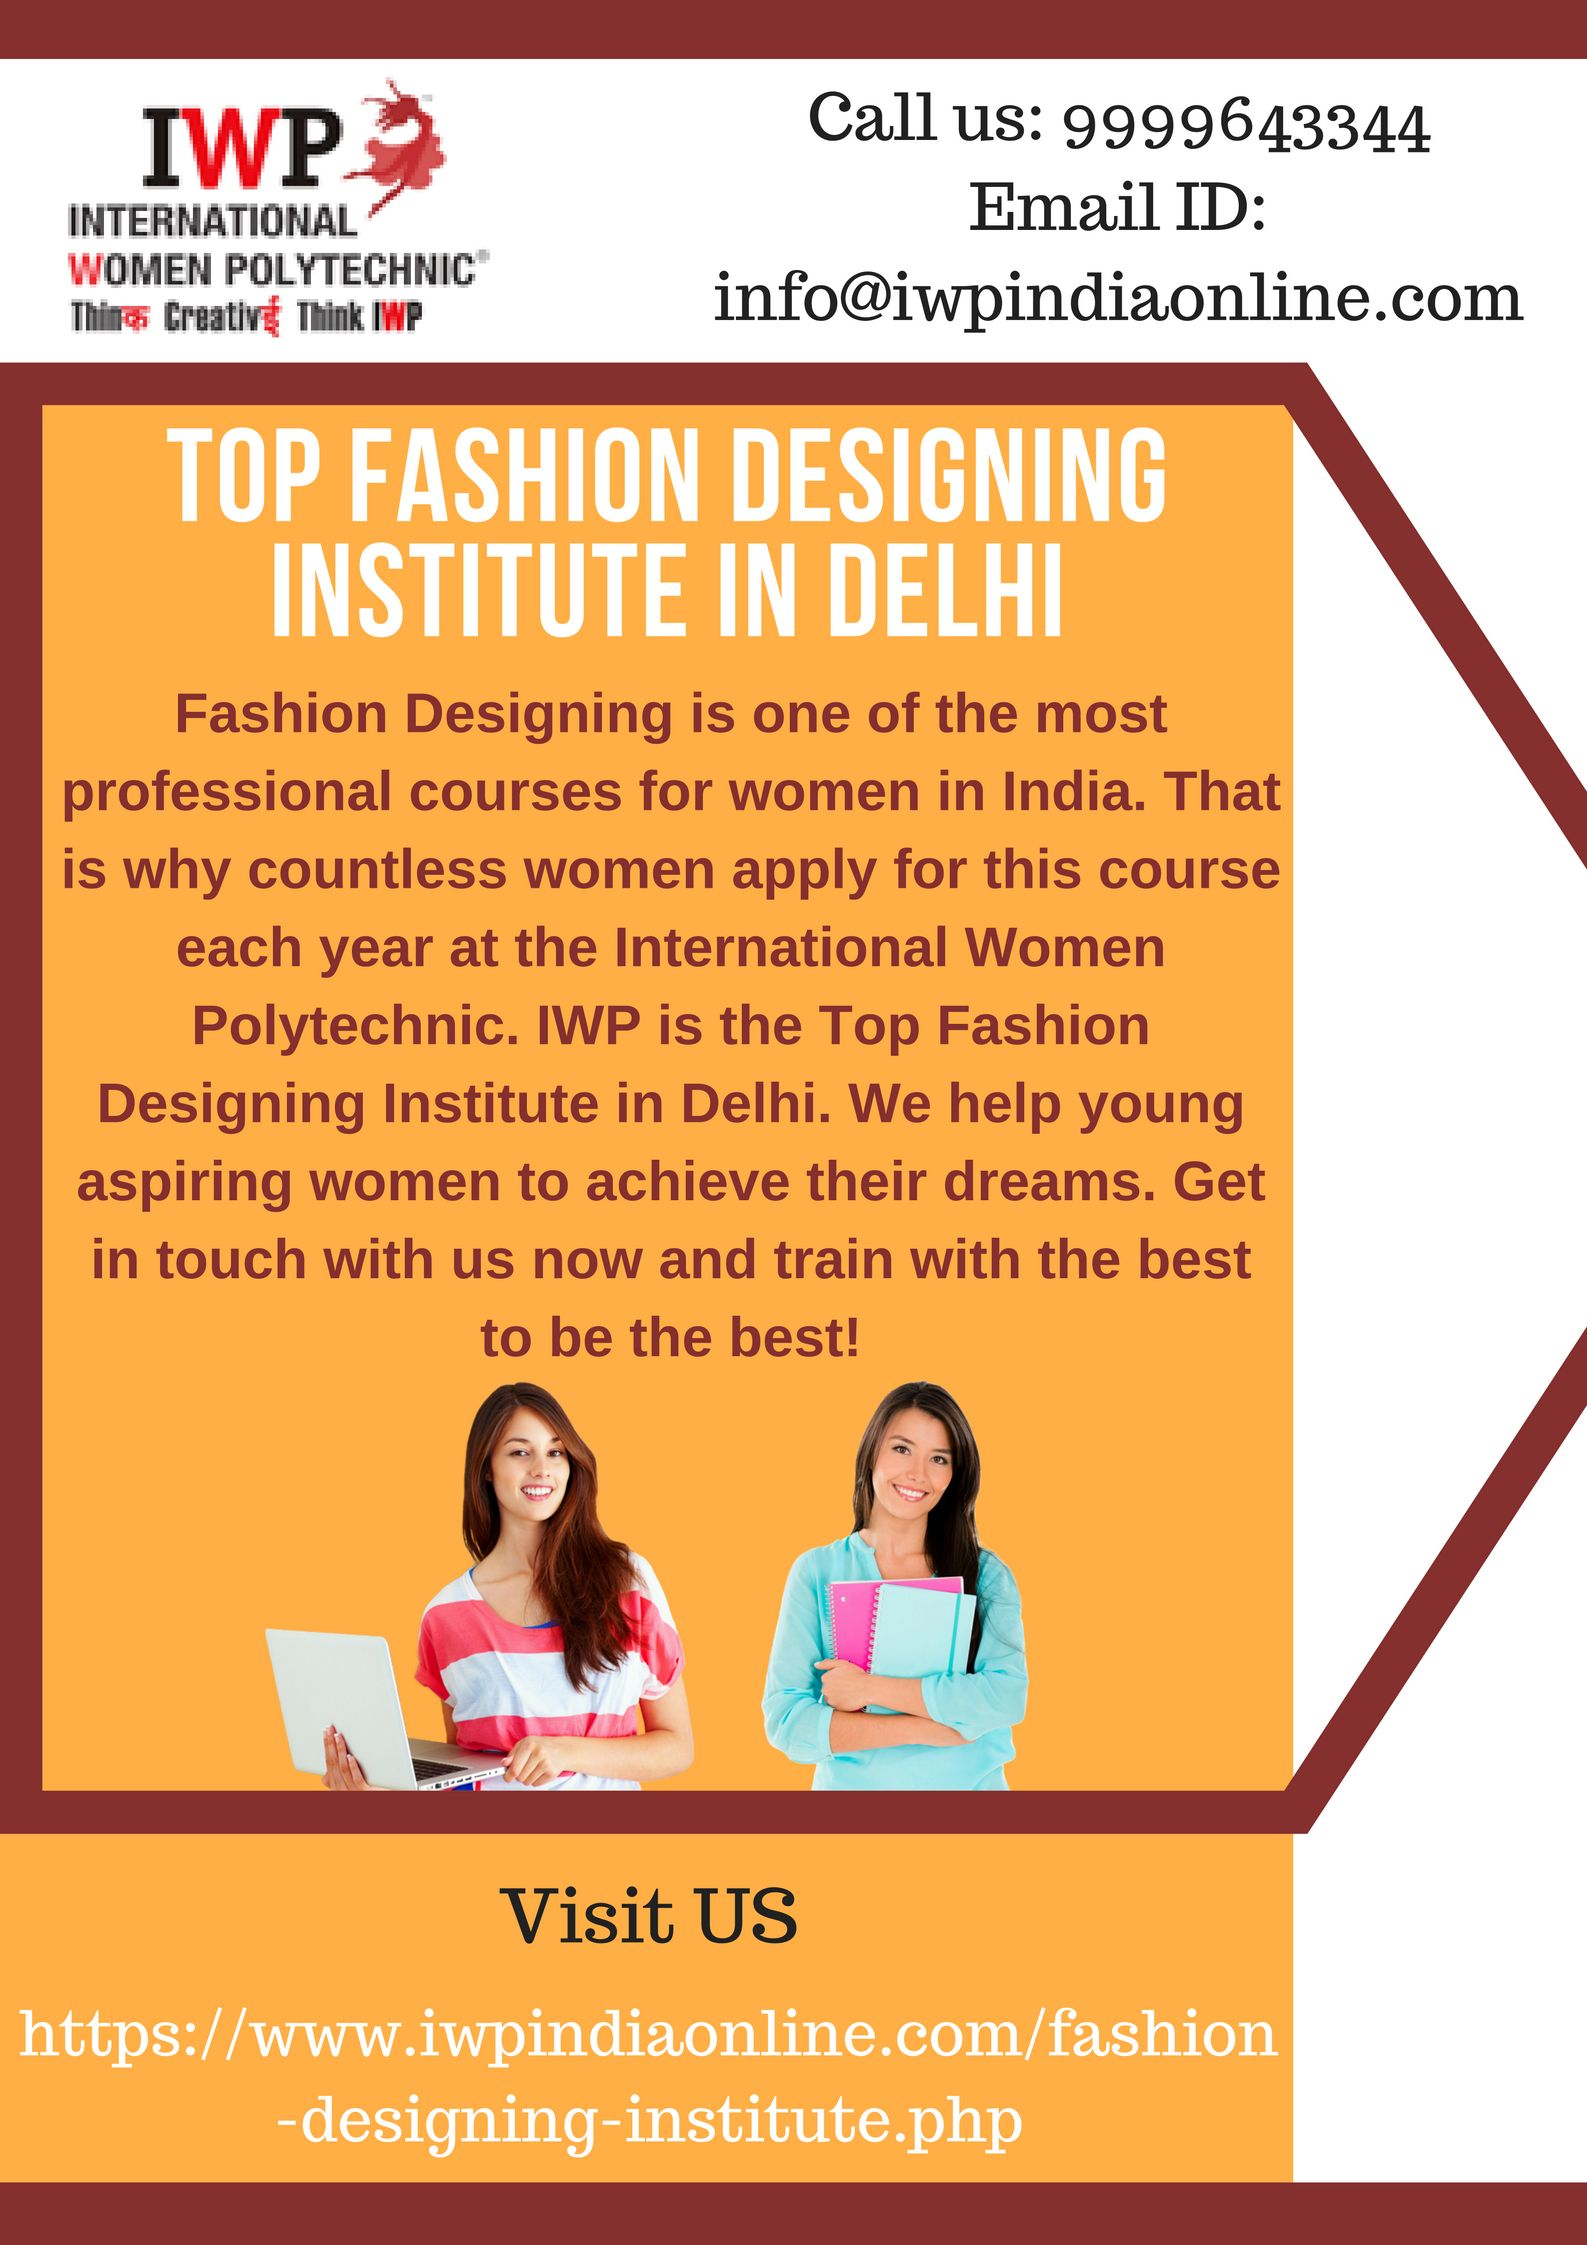 Planning To Make A Career In Fashion Designing International Women Polytechnic Is A Top Fashion Designing Institute Career In Fashion Designing Fashion Design